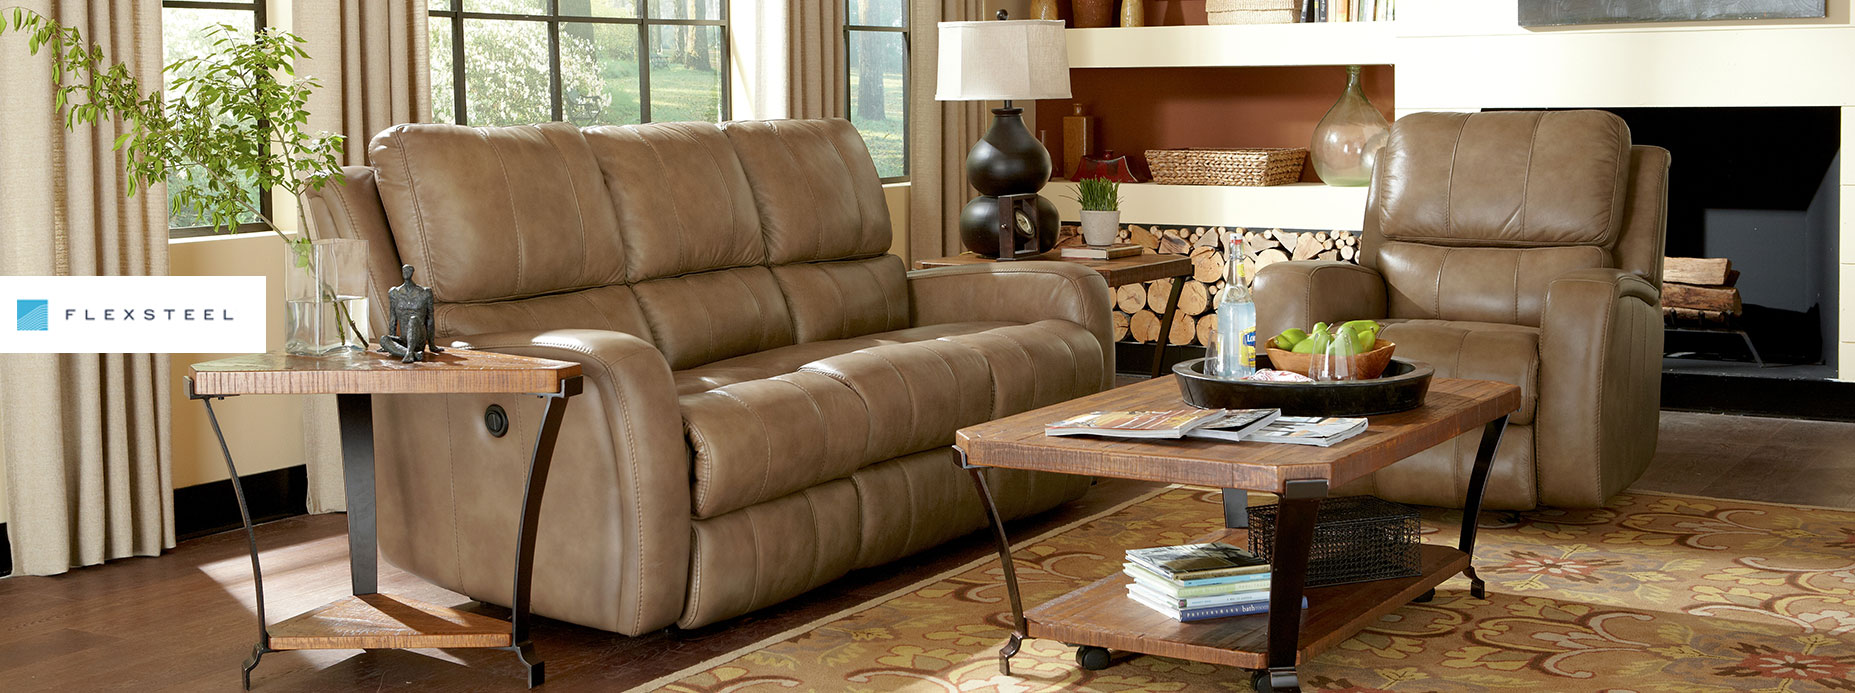 Room Furniture Flexsteel Furniture Discount Store And Showroom In Hickory Nc